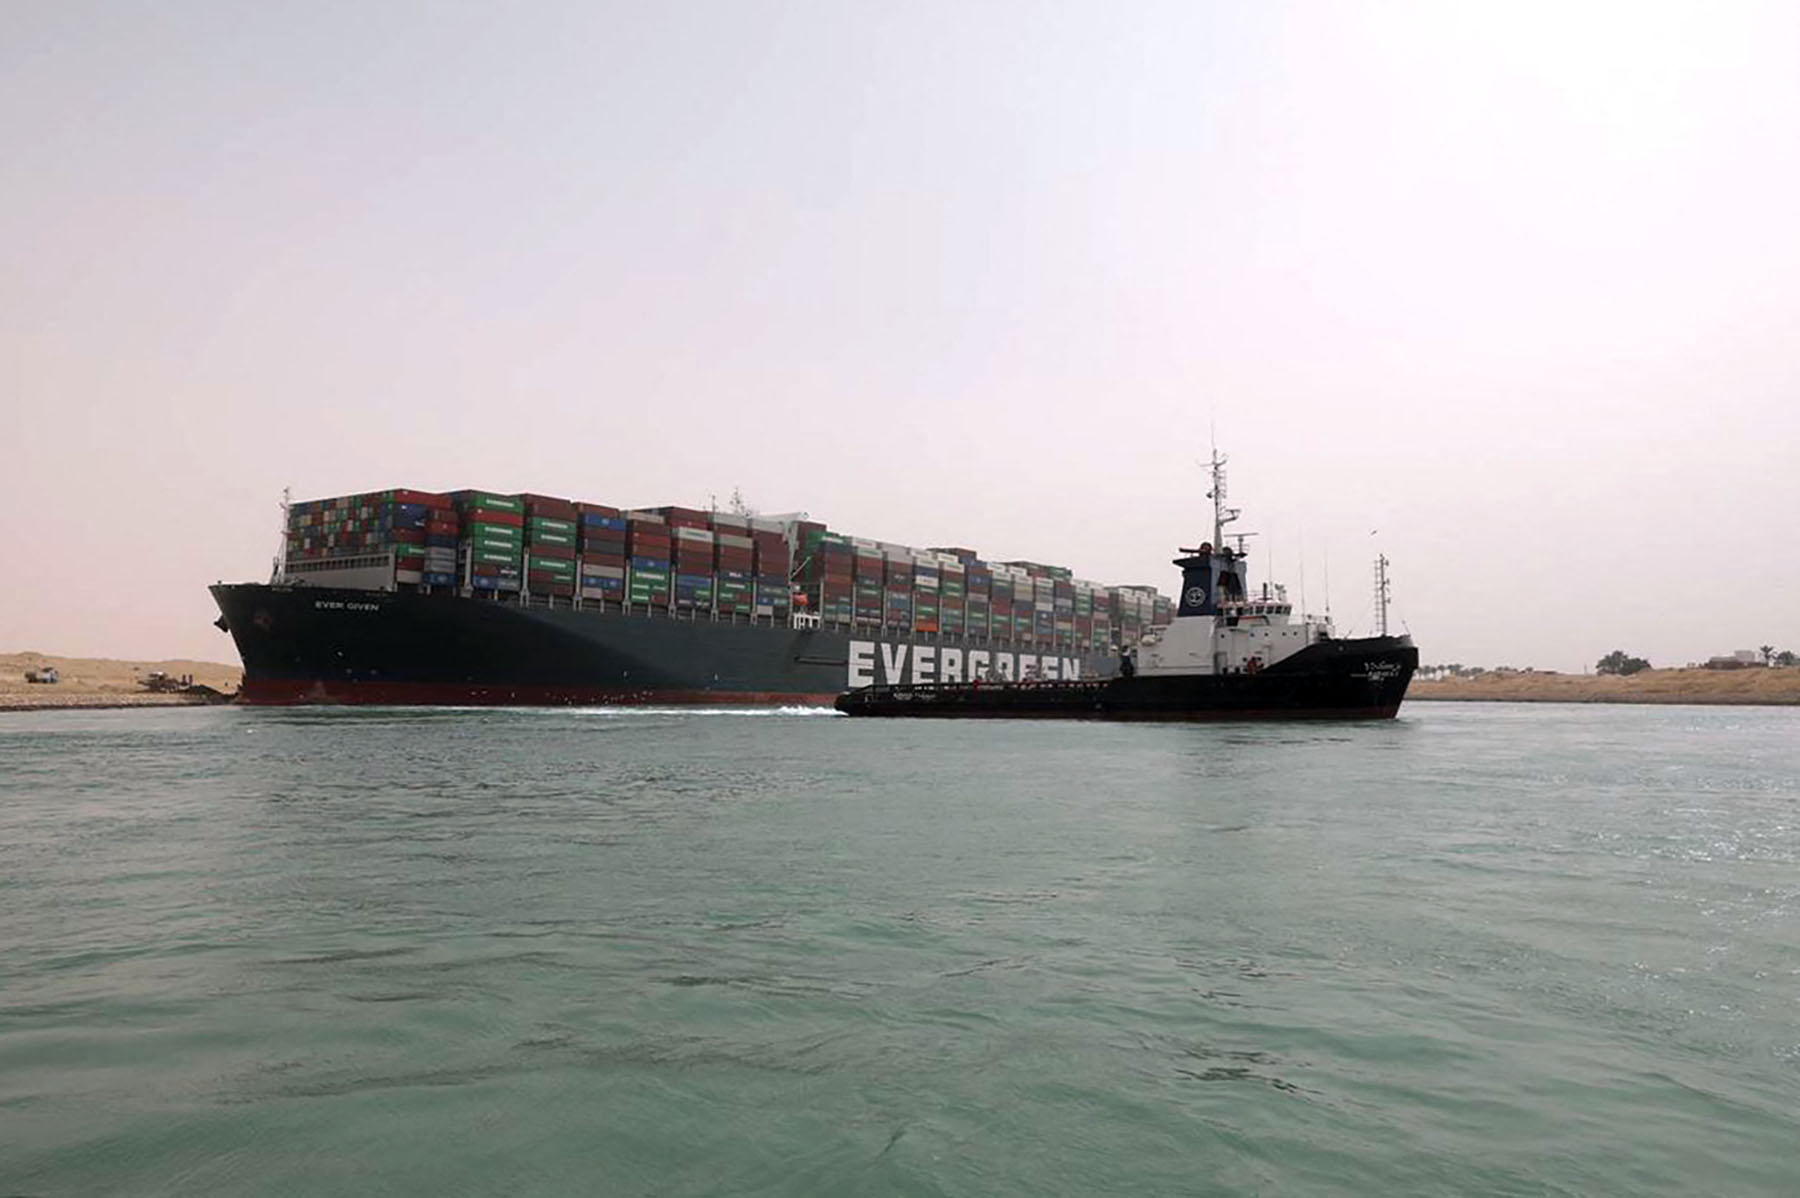 A handout picture released by the Suez Canal Authority on March 25, 2021 shows the MV Ever Given (Evergreen), a 400-metre- (1,300-foot-)long and 59-metre wide vessel, lodged sideways and impeding all traffic across the waterway of Egypt's Suez Canal. - Egypt's Suez Canal Authority said it was